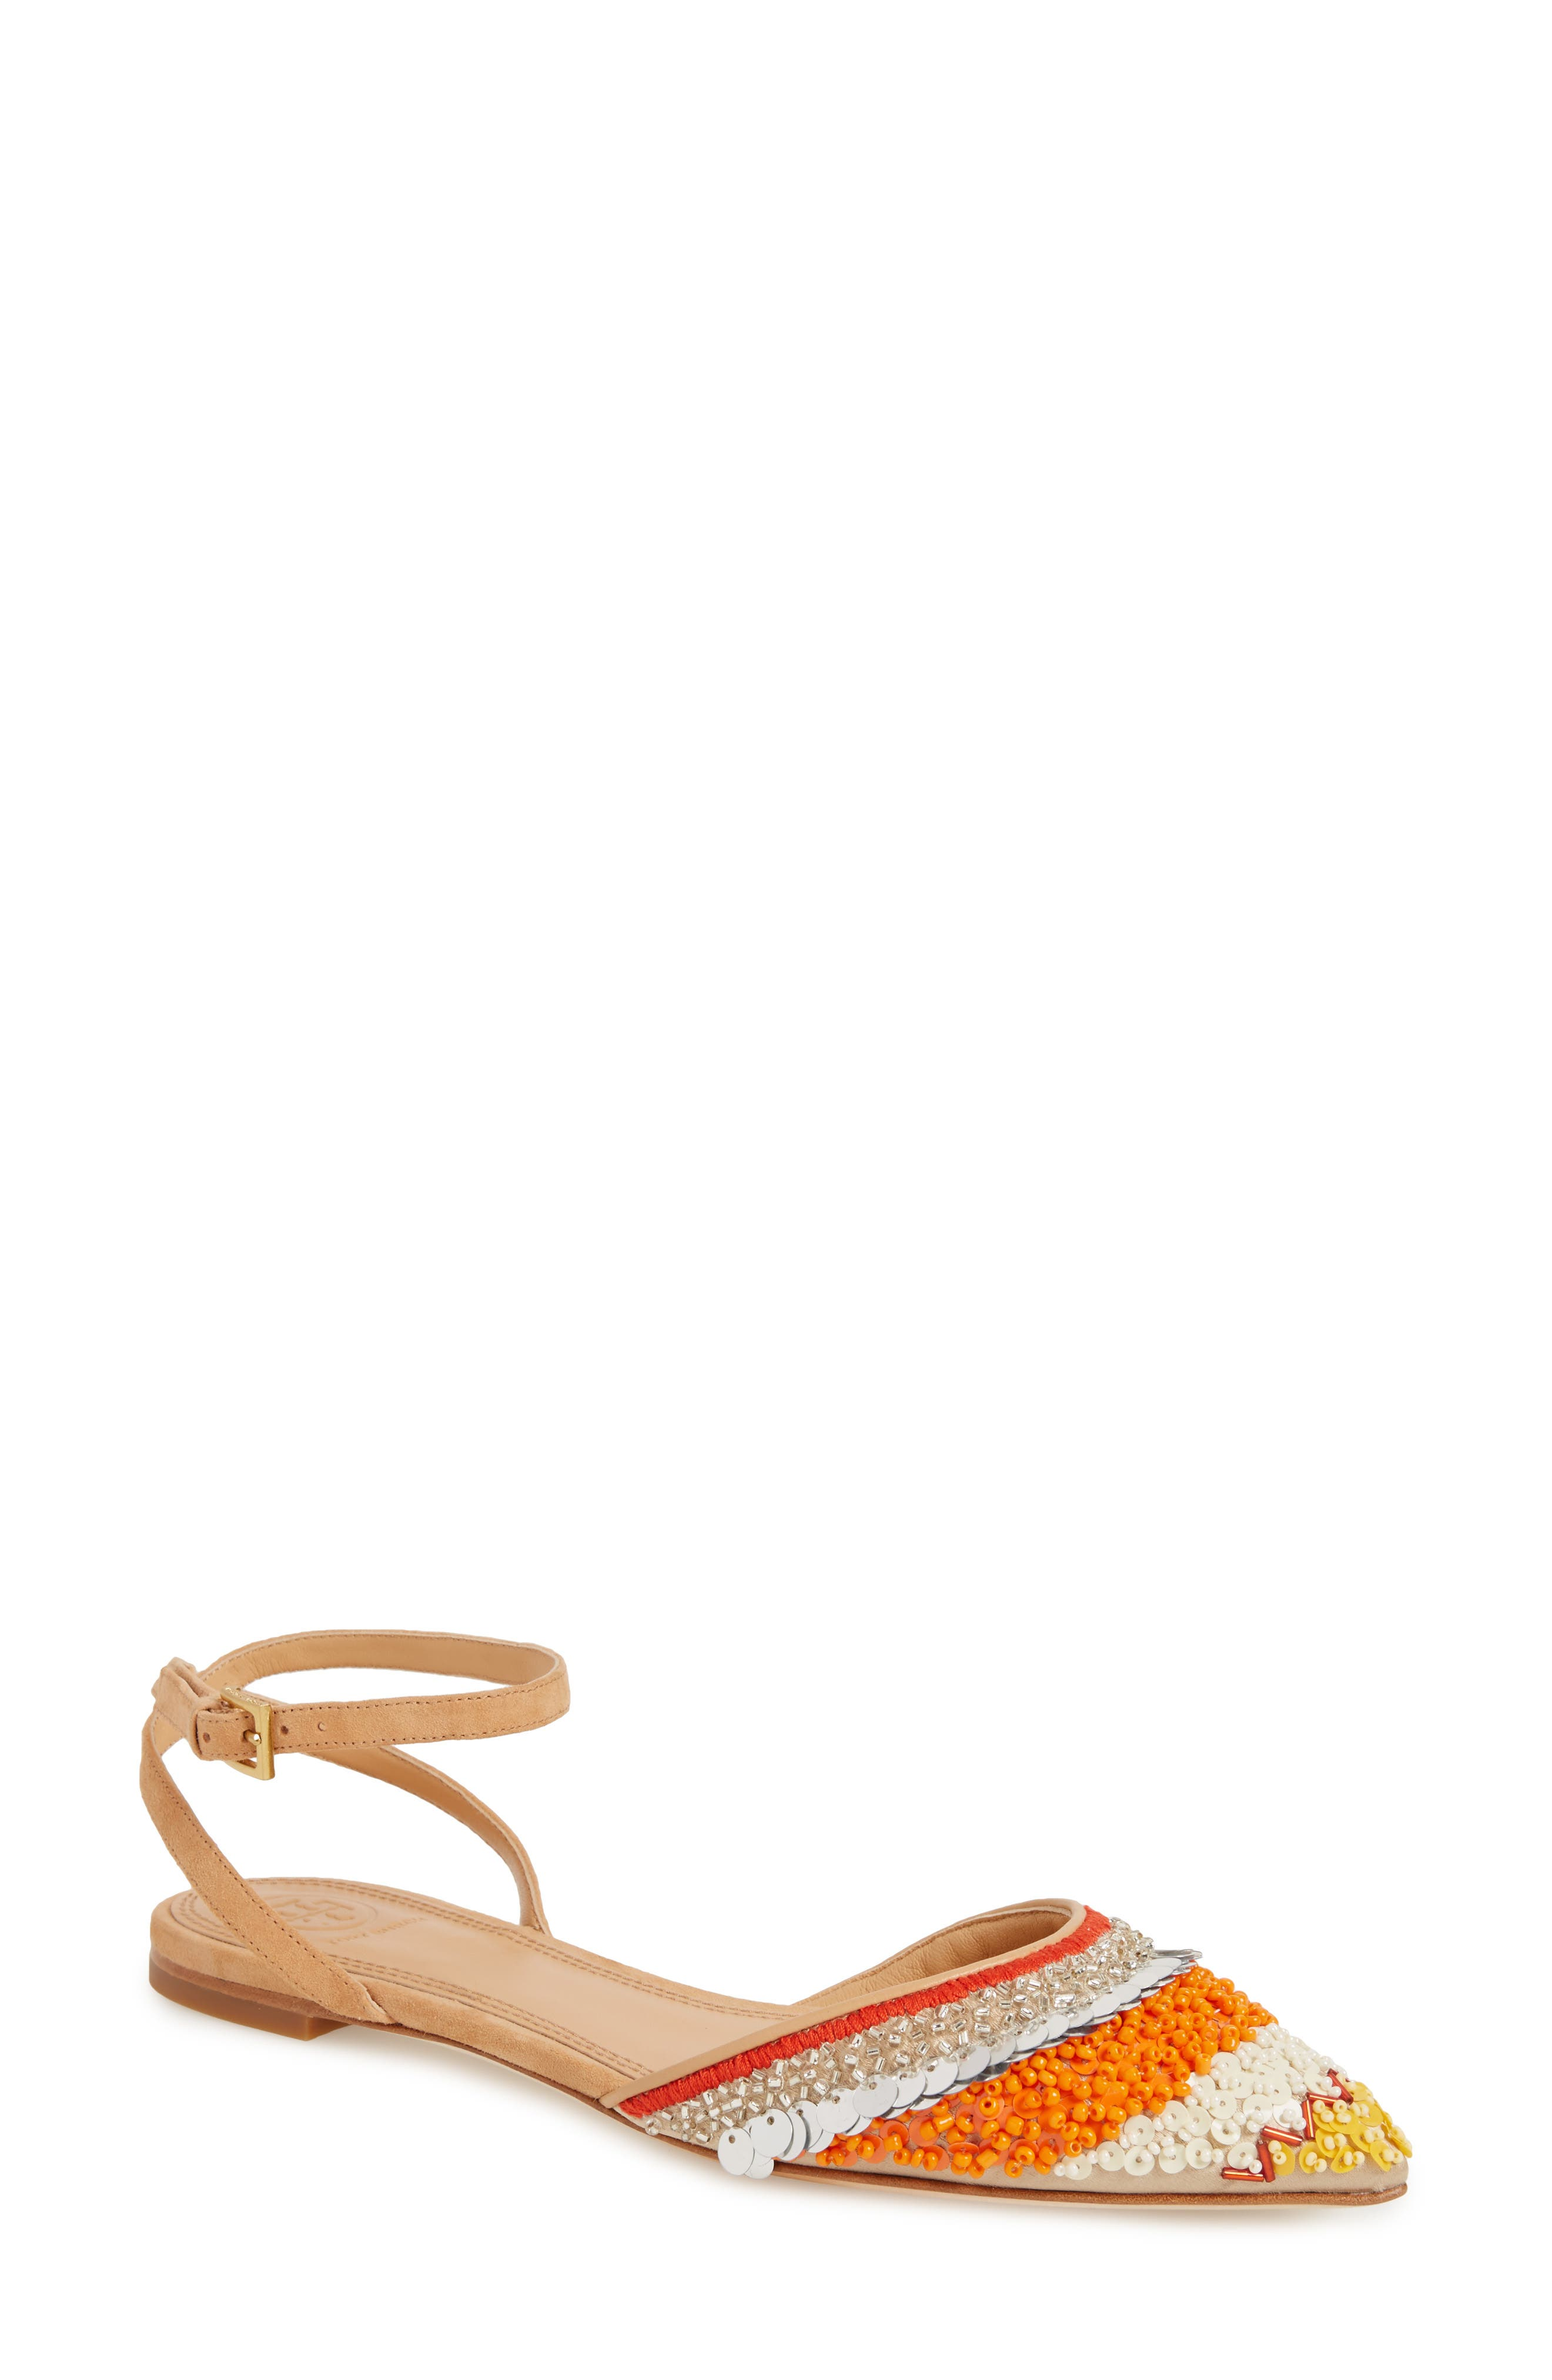 Isle Embellished Ankle Strap Flat,                         Main,                         color, Multi Color/ Natural